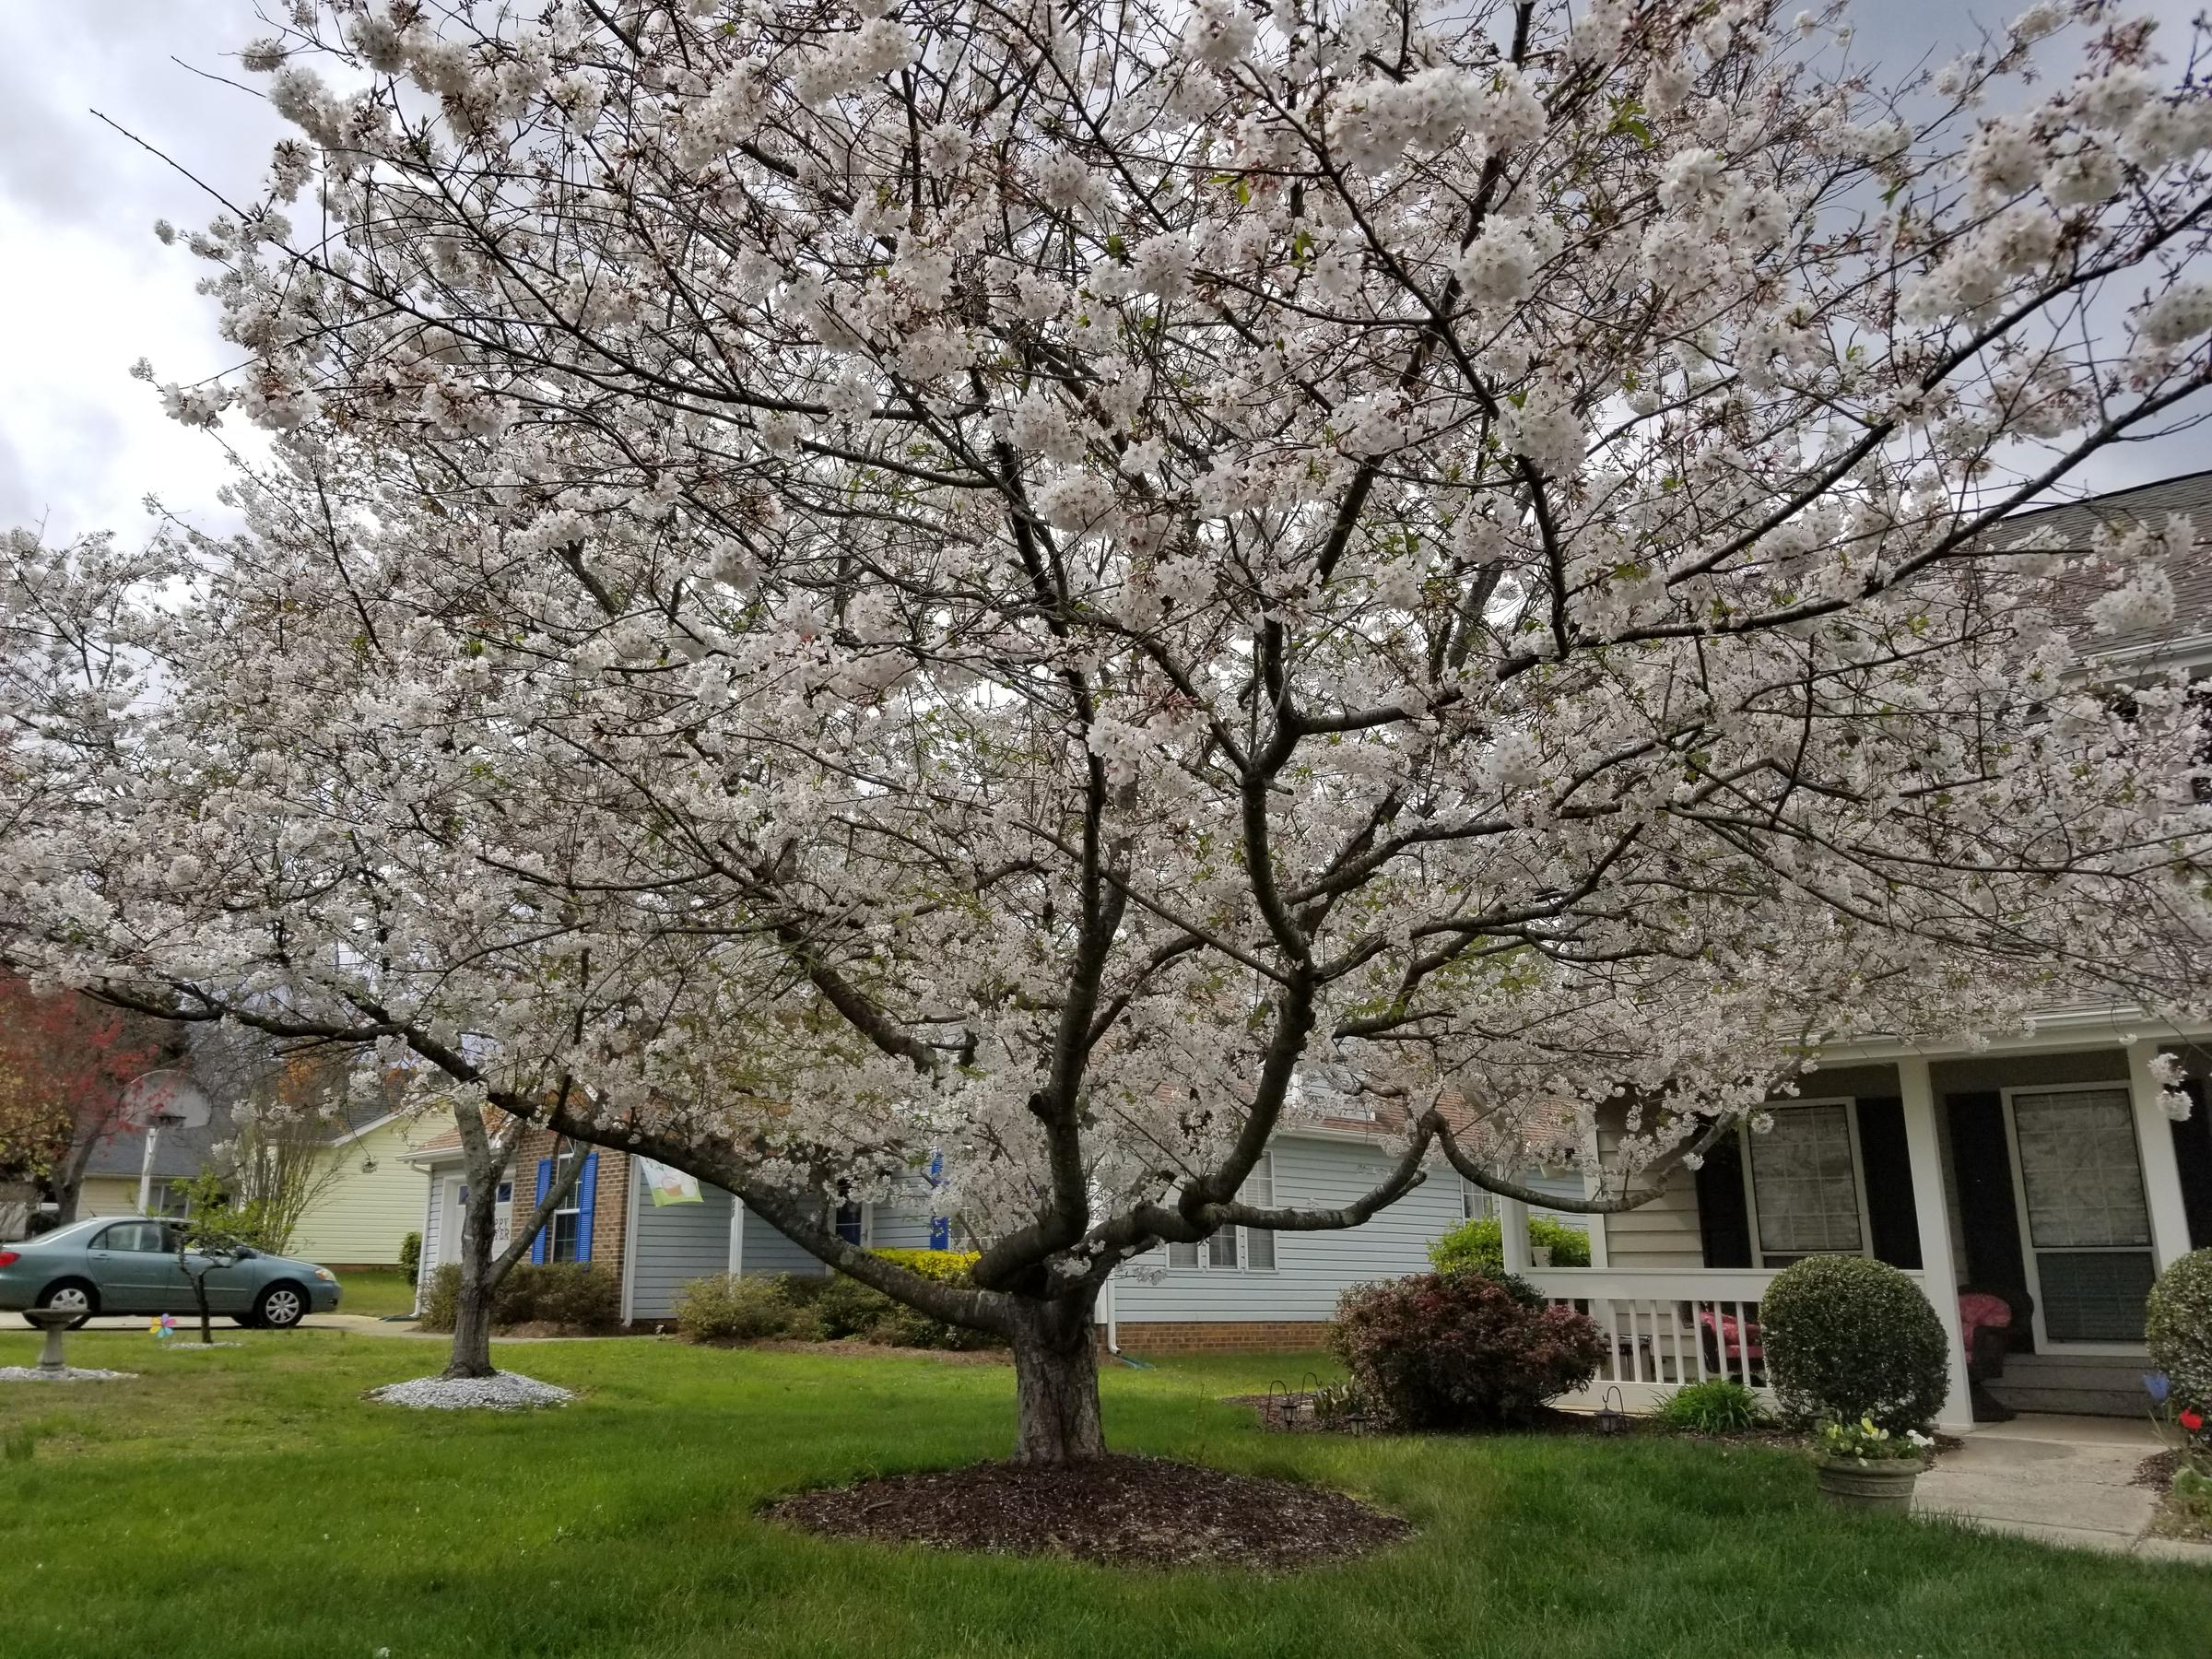 In A City Of Trees This Japanese Cherry Is Prize Worthy Wfae